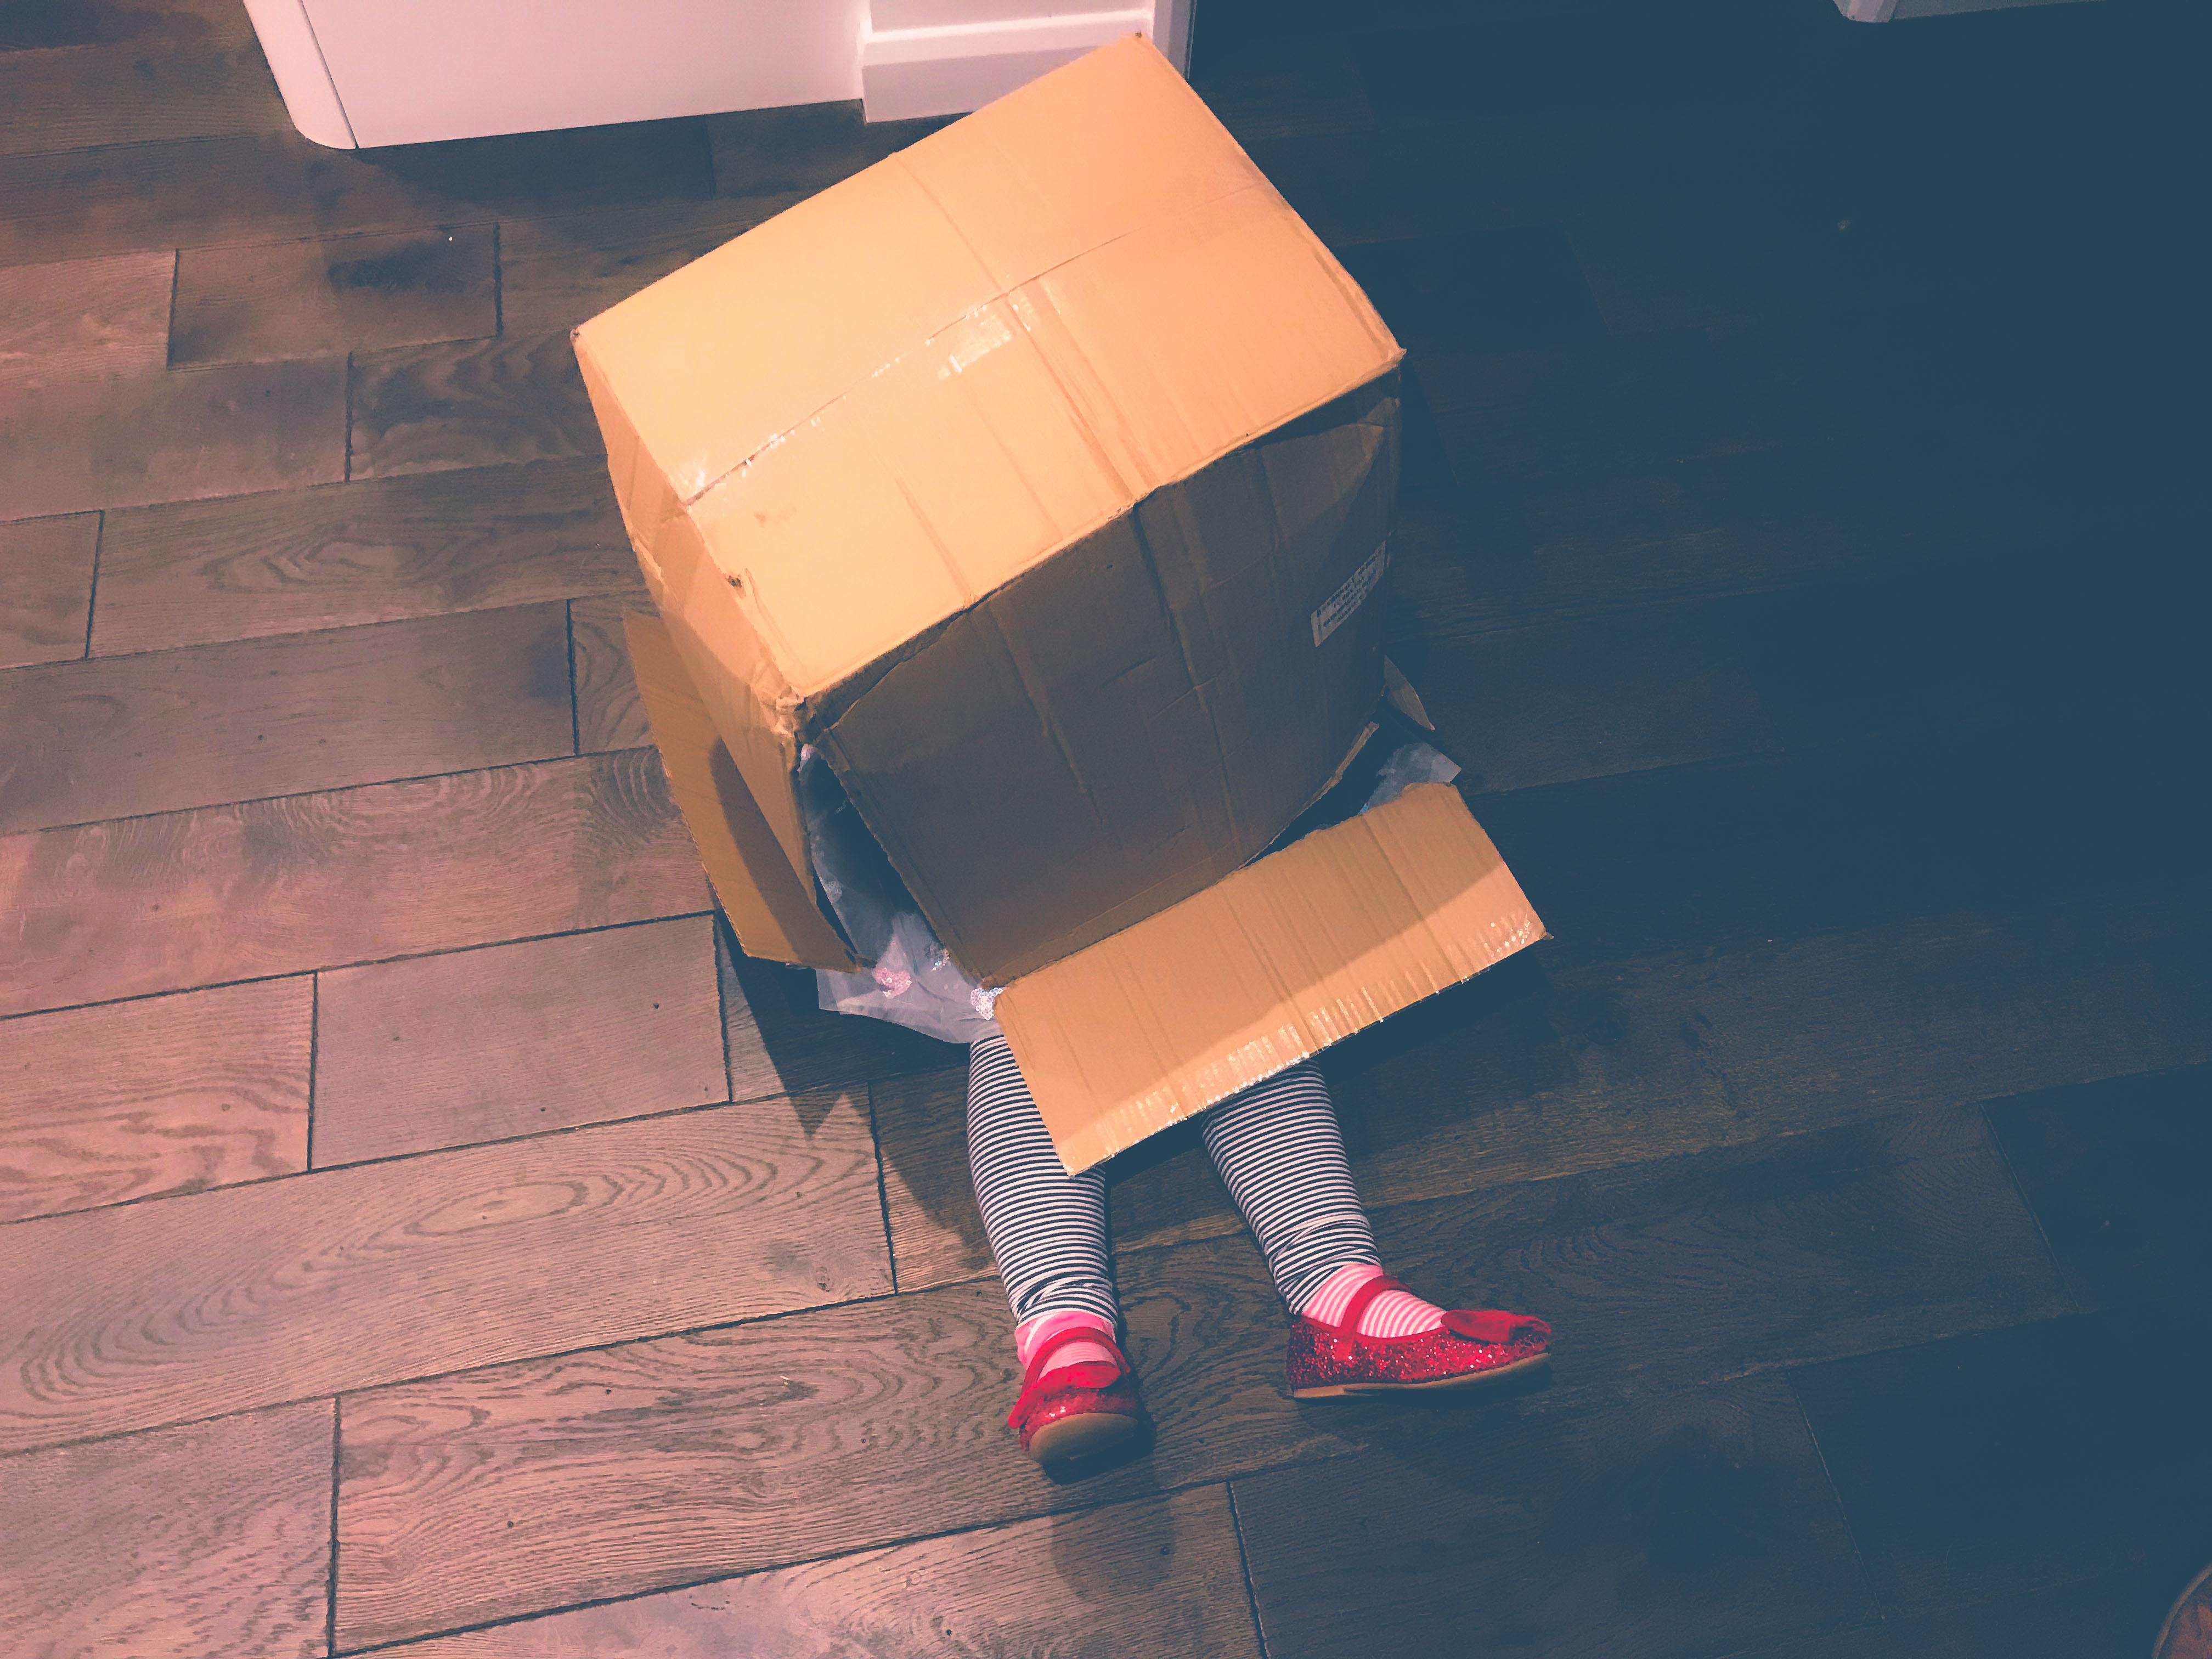 Little girl hiding in a cardboard box with her red shoes poking out